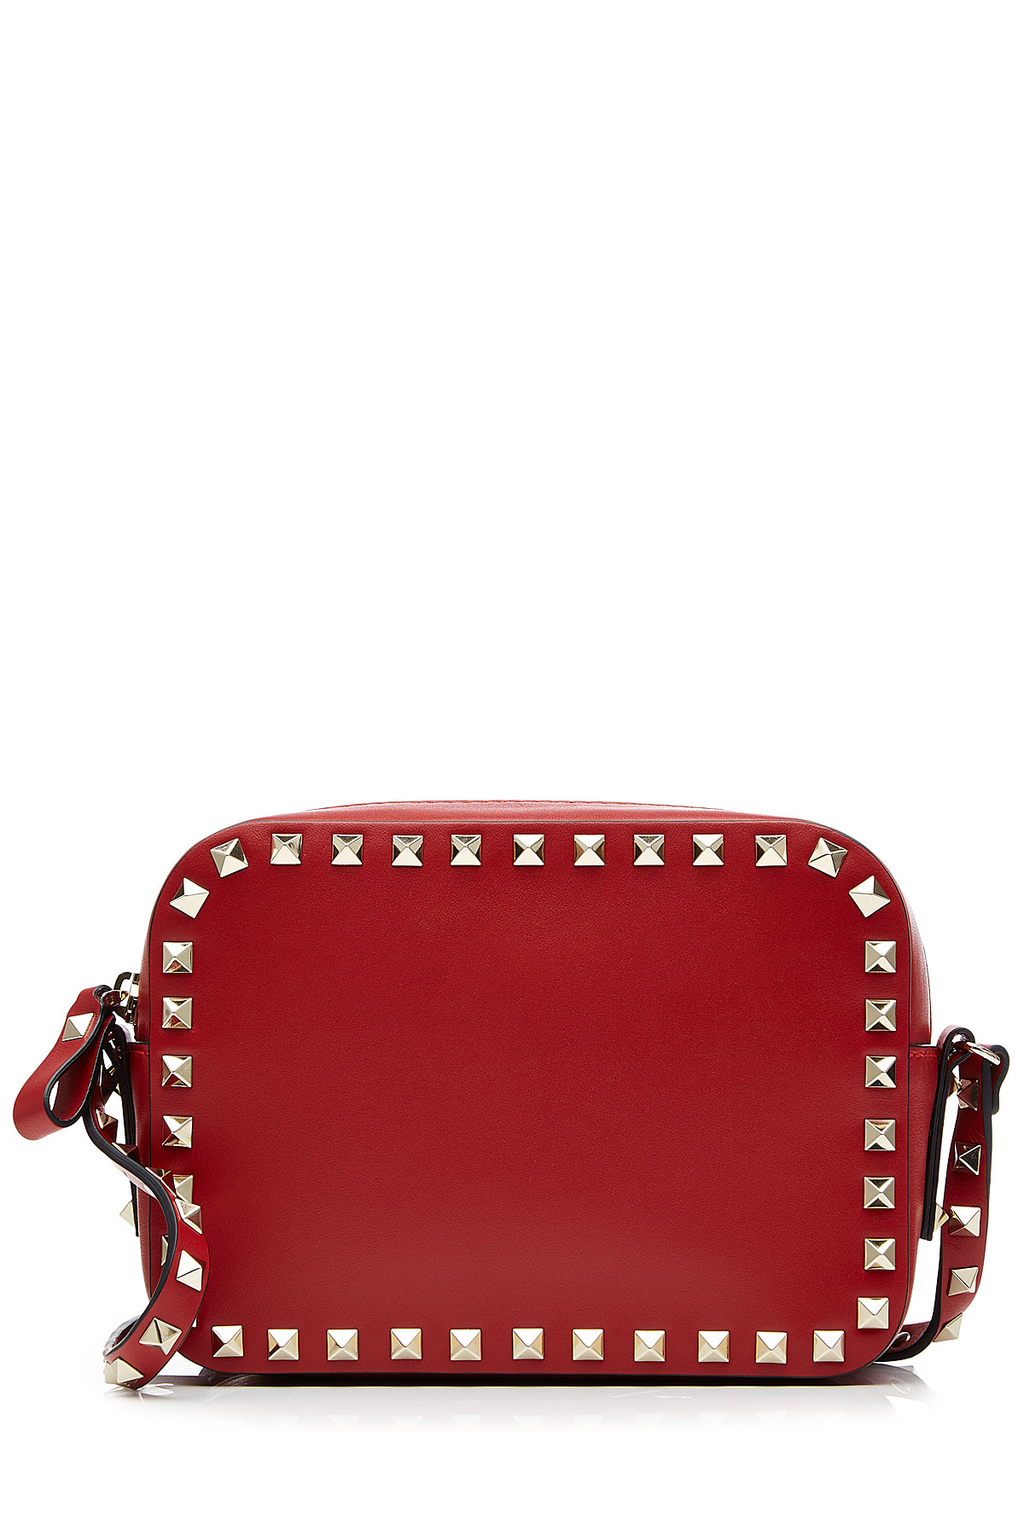 Rockstud Leather Camera Bag Red - predominant colour: true red; secondary colour: gold; type of pattern: standard; style: messenger; length: across body/long; size: mini; material: leather; embellishment: studs; pattern: plain; finish: plain; occasions: creative work; season: s/s 2016